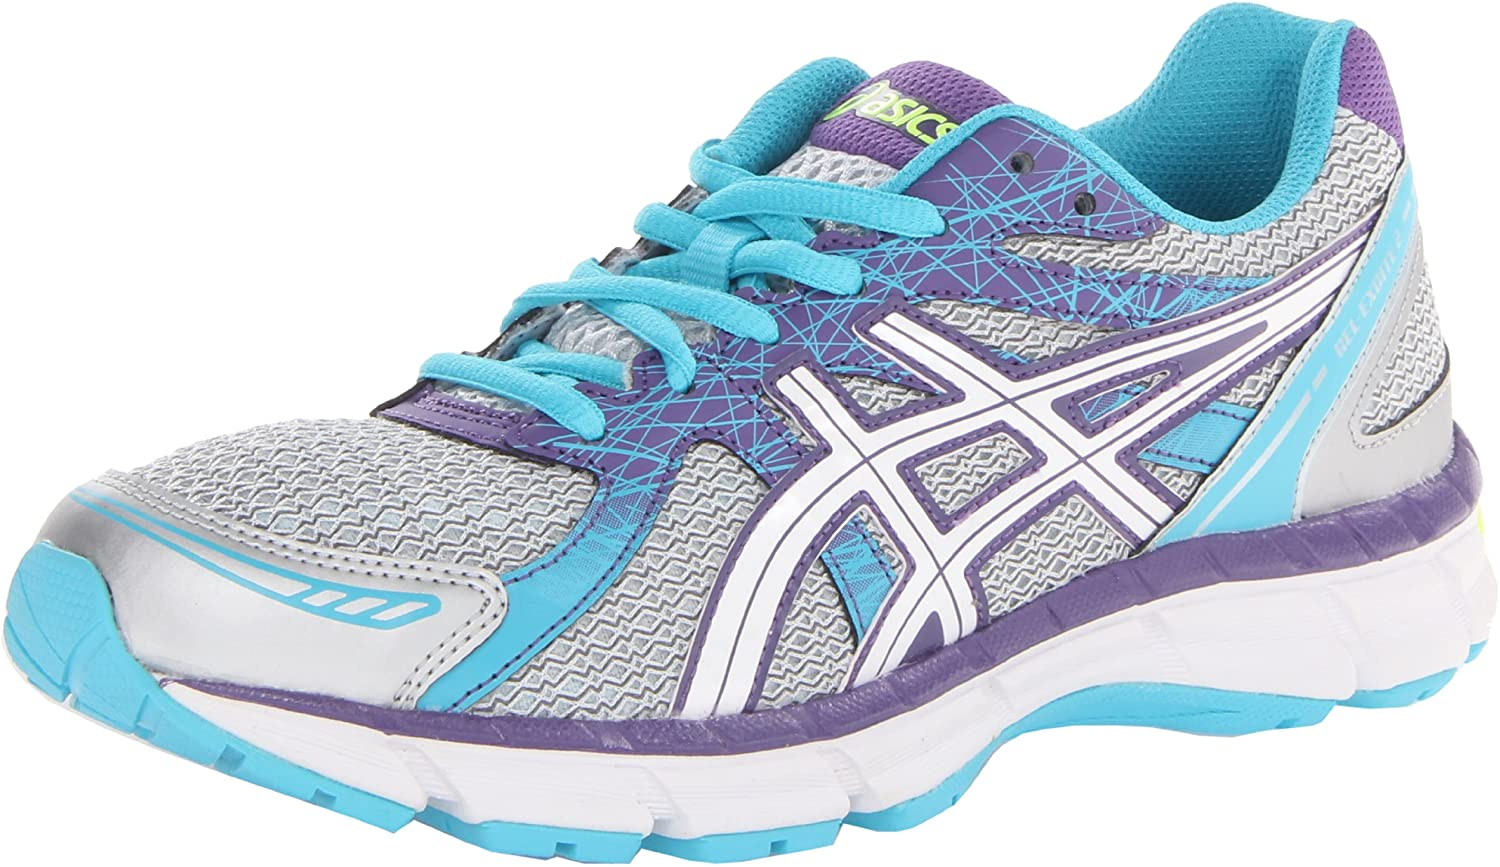 asics women's gel excite 6 running shoes review amazon